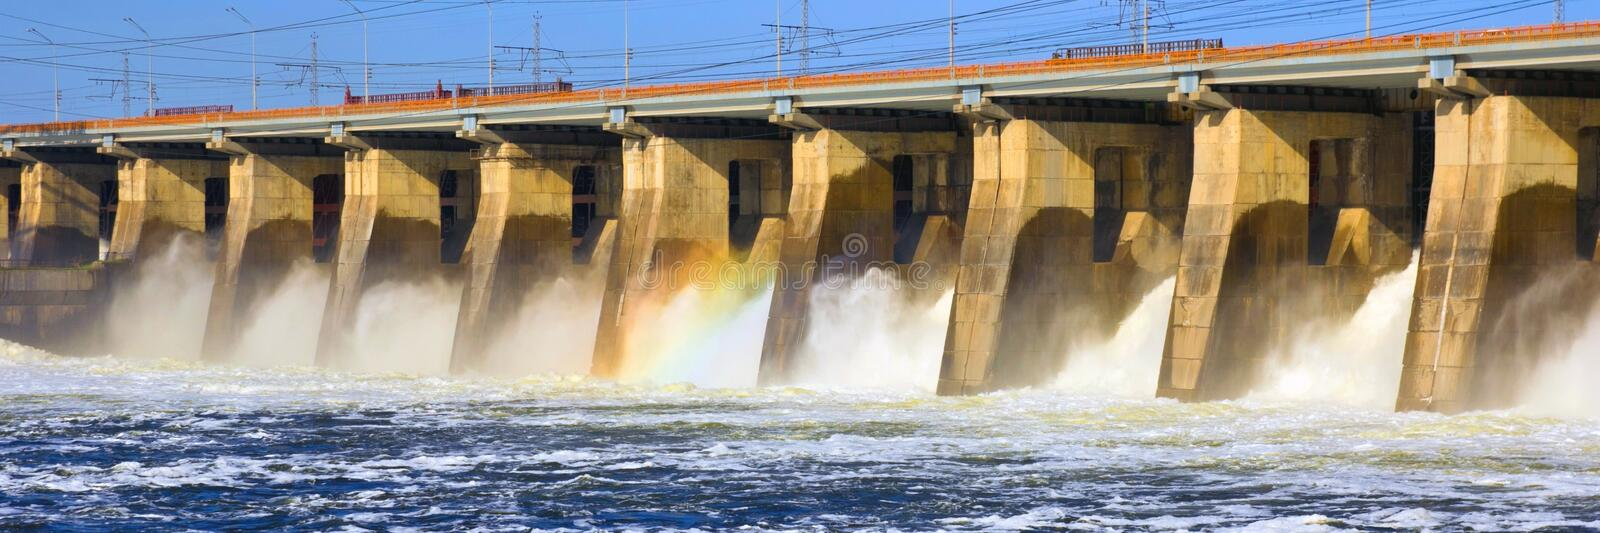 The Great Spring Water Discharge at the Zhiguli Dam near the city of Tolyatti on the Volga River. royalty free stock image